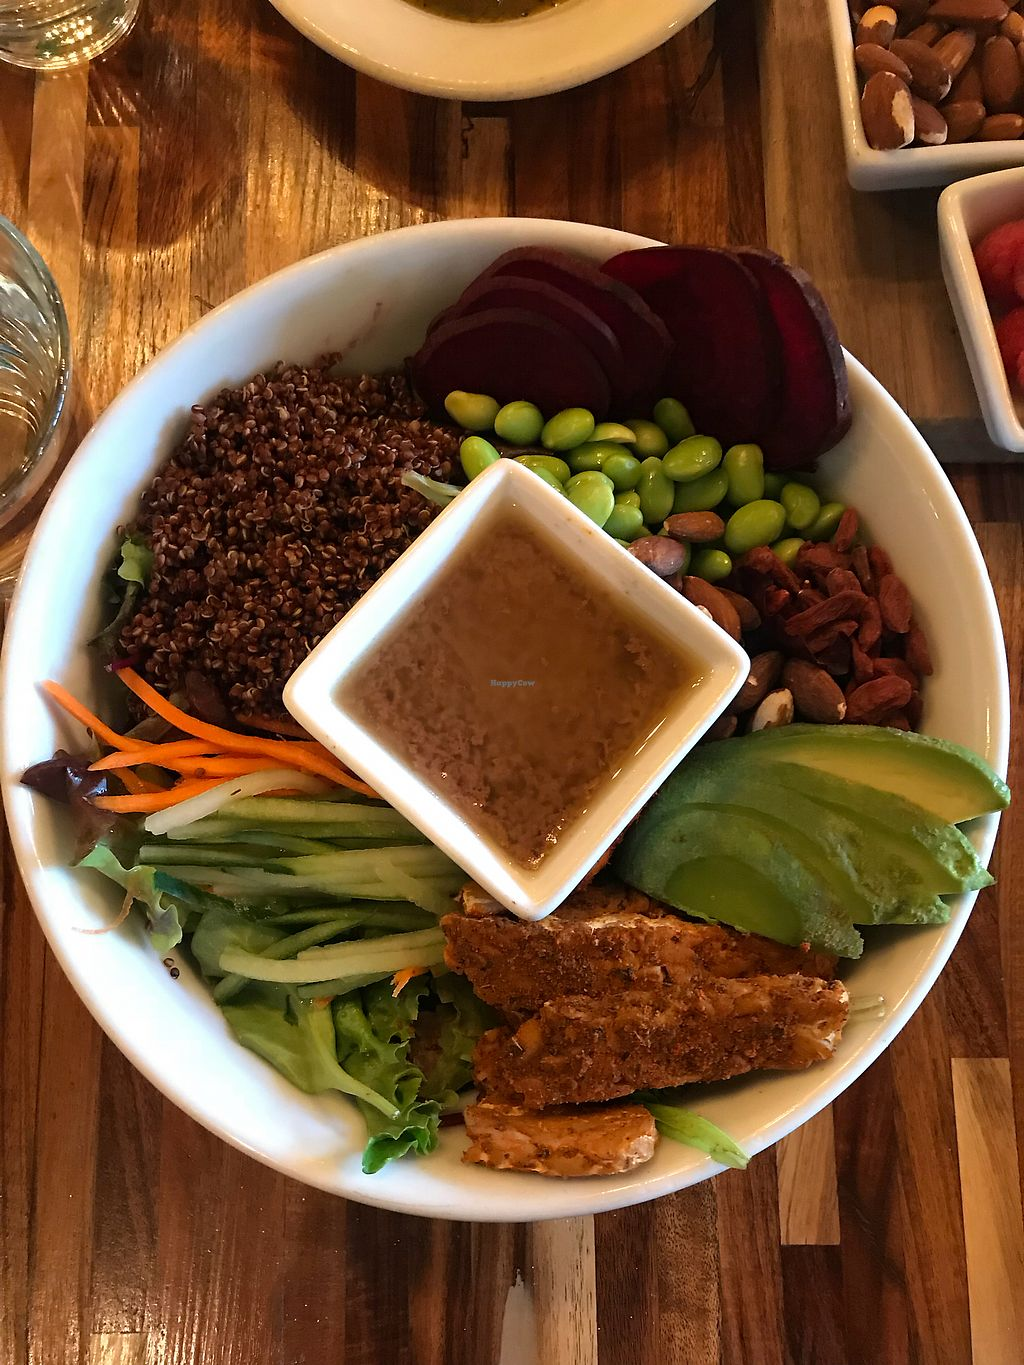 "Photo of GreenSpace Cafe  by <a href=""/members/profile/ultra%2Arunner"">ultra*runner</a> <br/>Superfood bowl.  <br/> May 2, 2018  - <a href='/contact/abuse/image/57951/393742'>Report</a>"